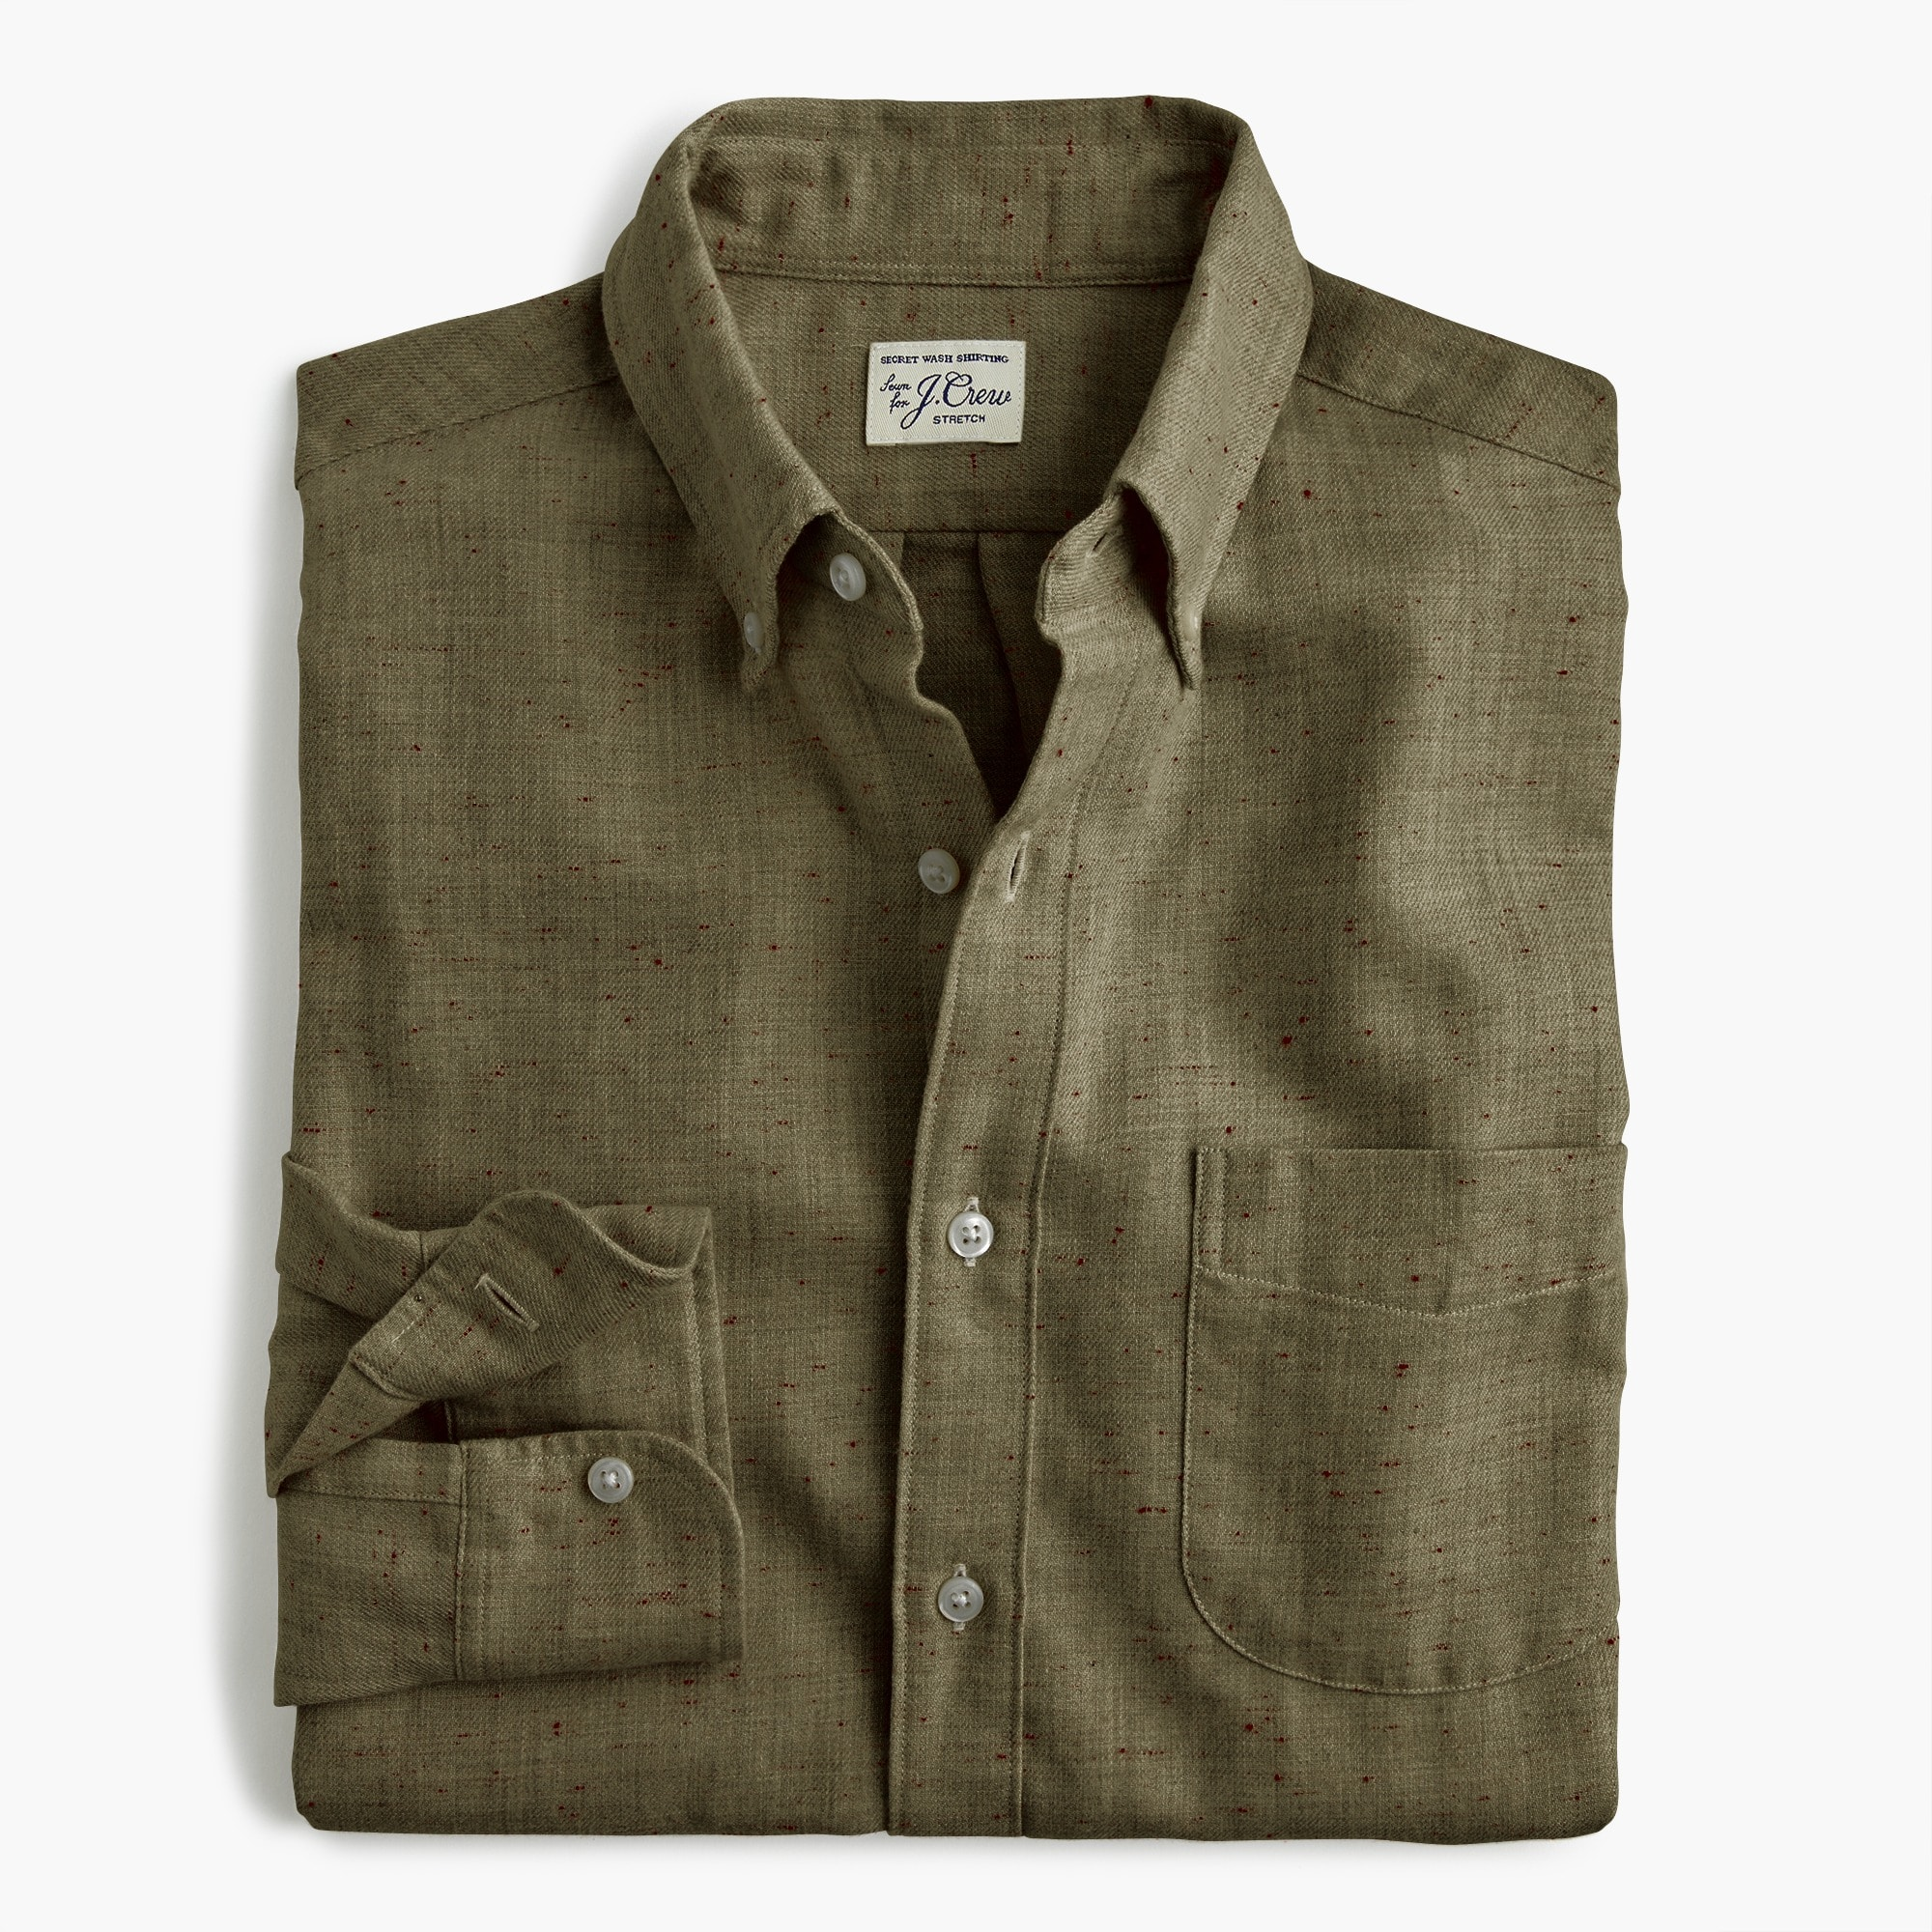 mens Slim neppy cotton twill shirt